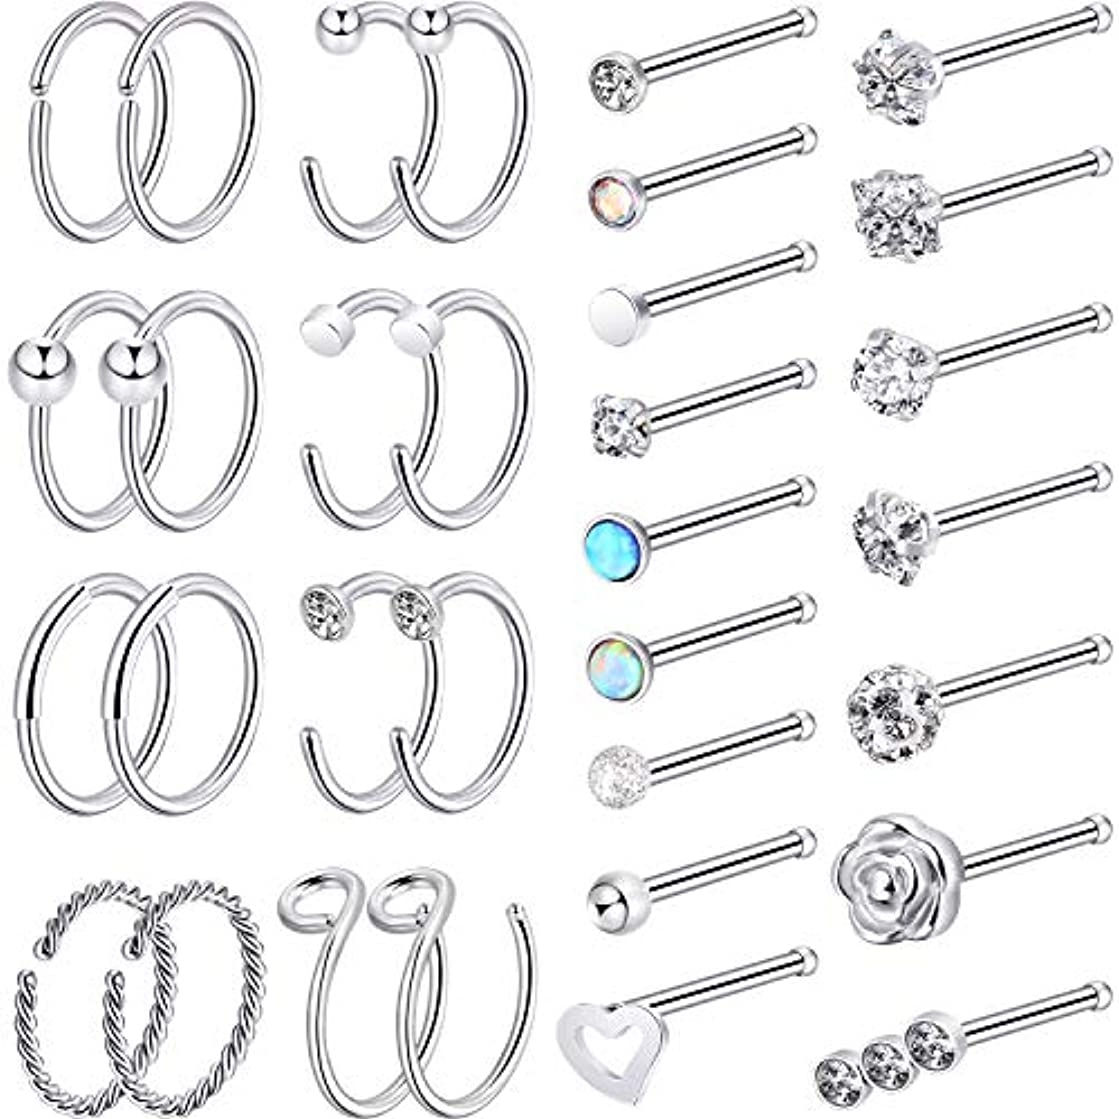 Chinco 32 Pieces C-Shaped Nose Ring L-Shaped Hoop Tragus Nose Studs Bone Curved Hoop Tragus Cartilage Hoop Piercing